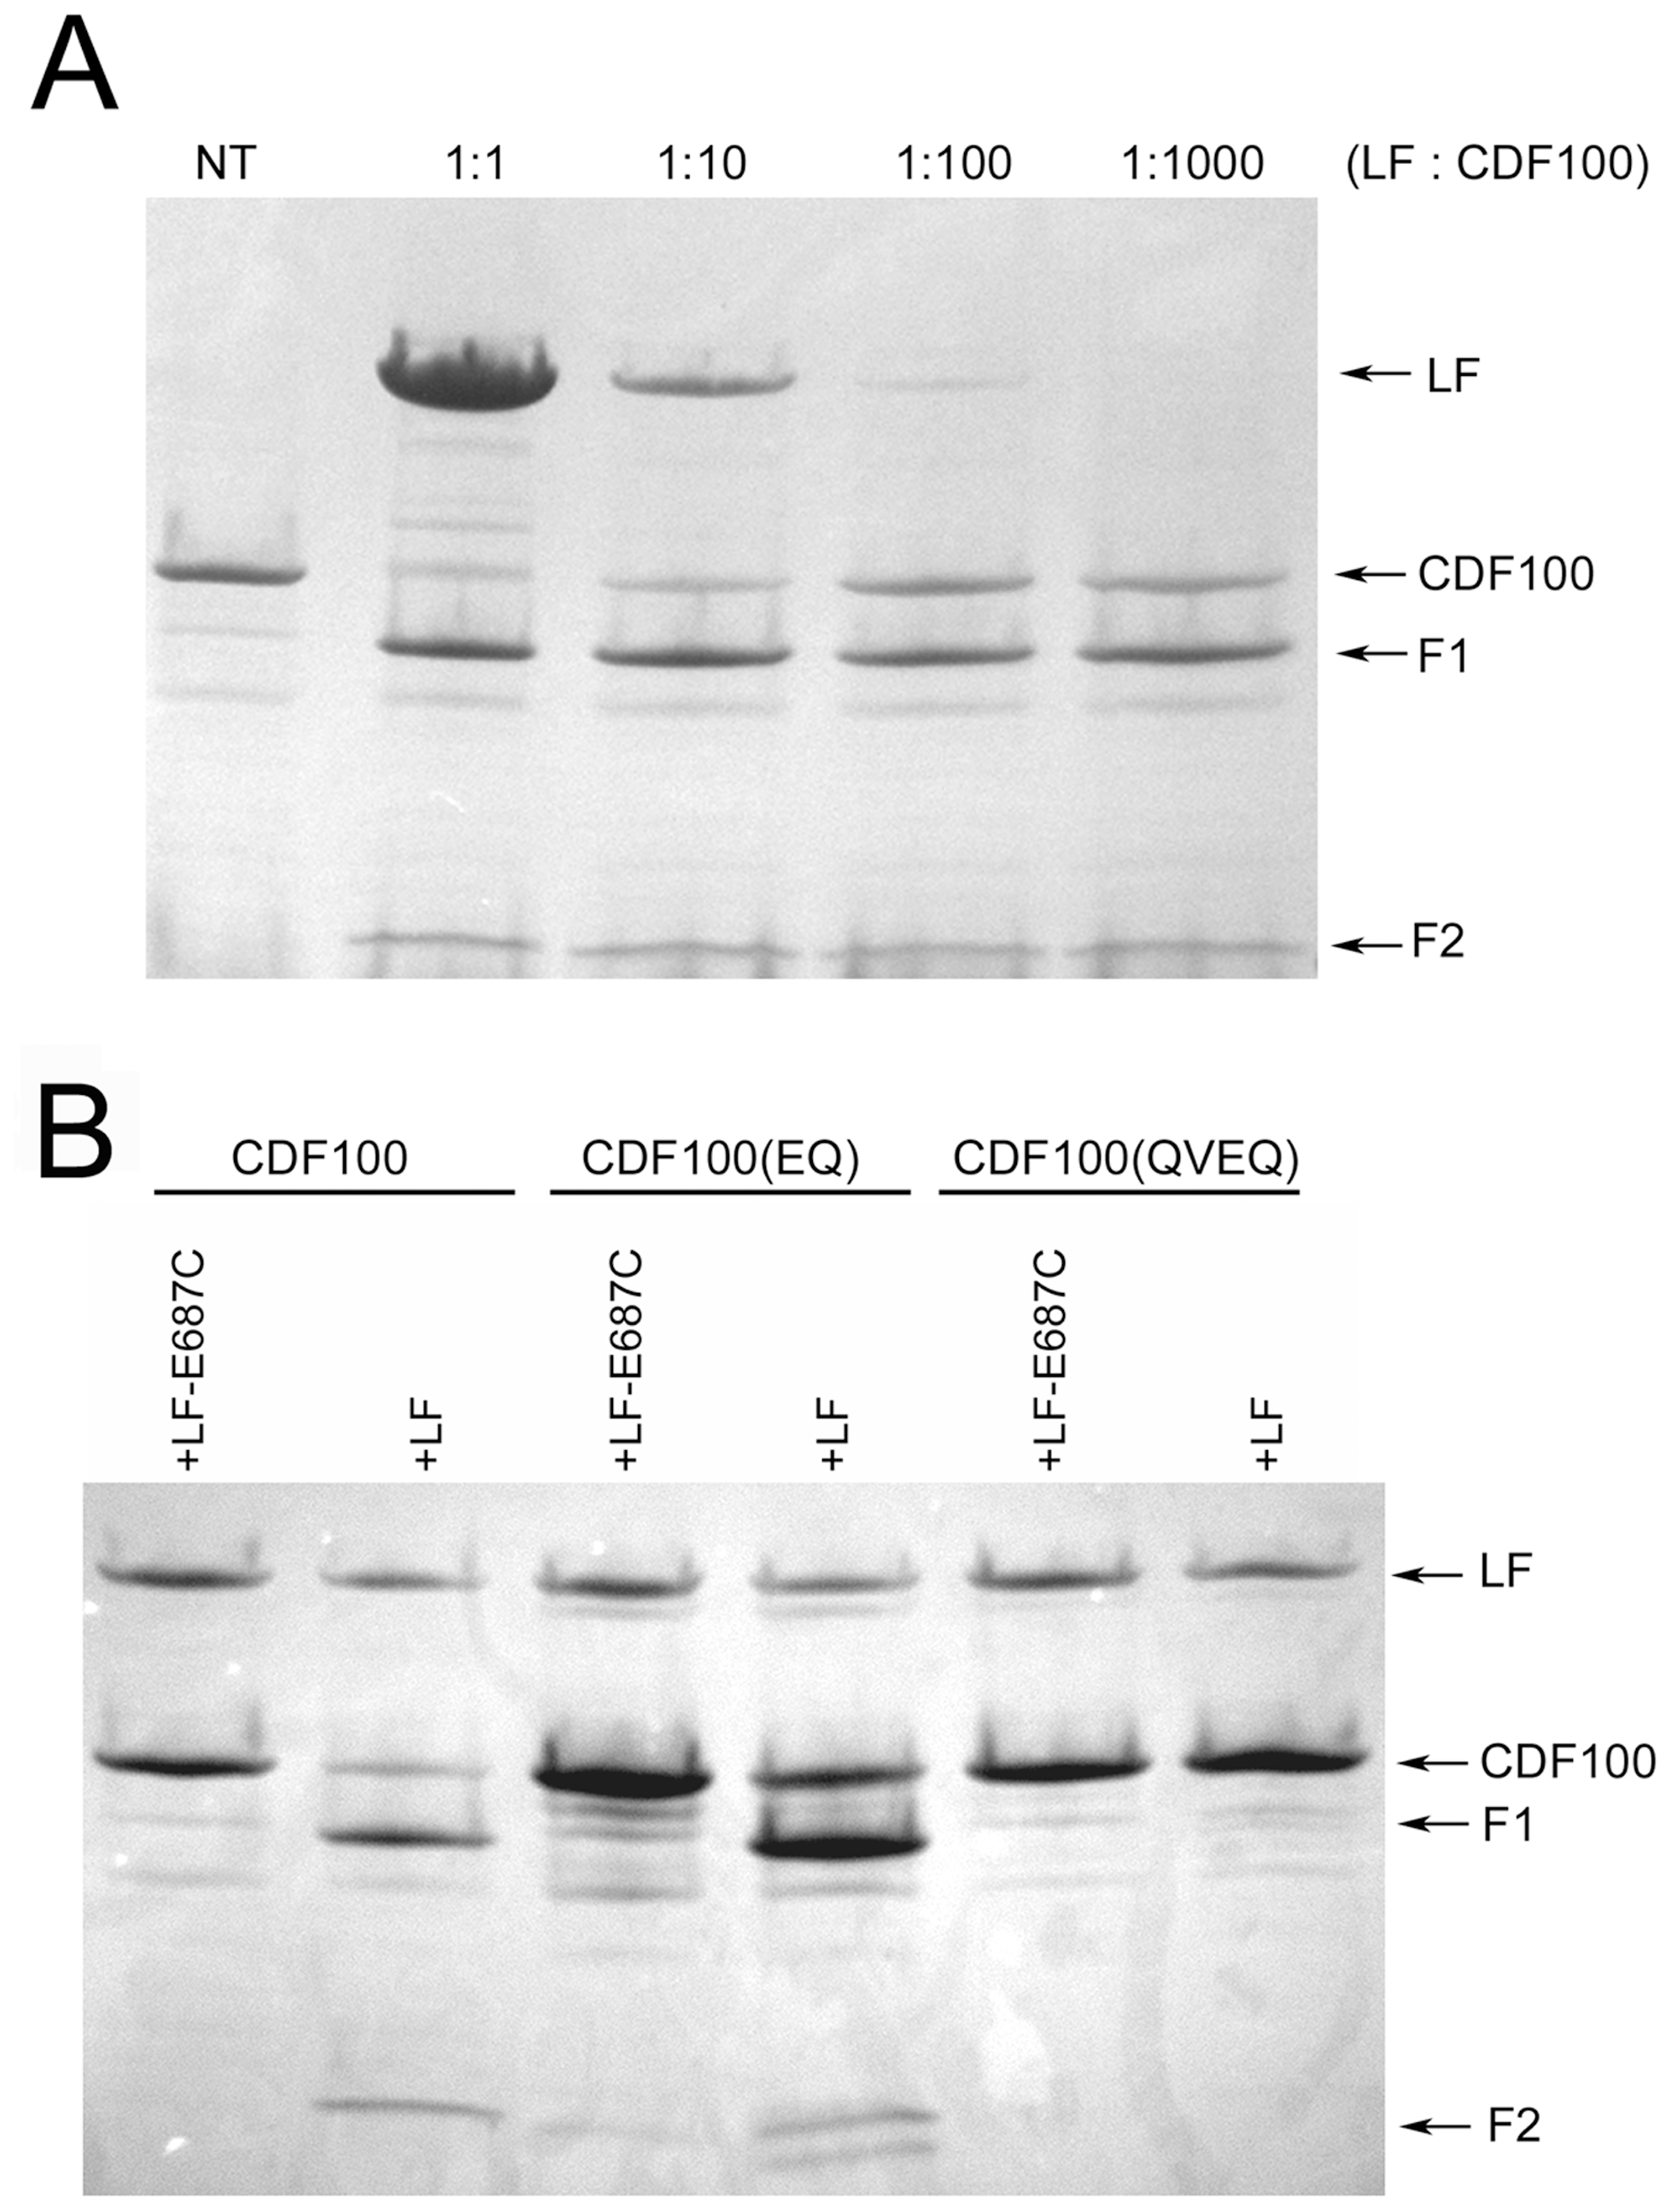 Cleavage of CDF100 by LF.